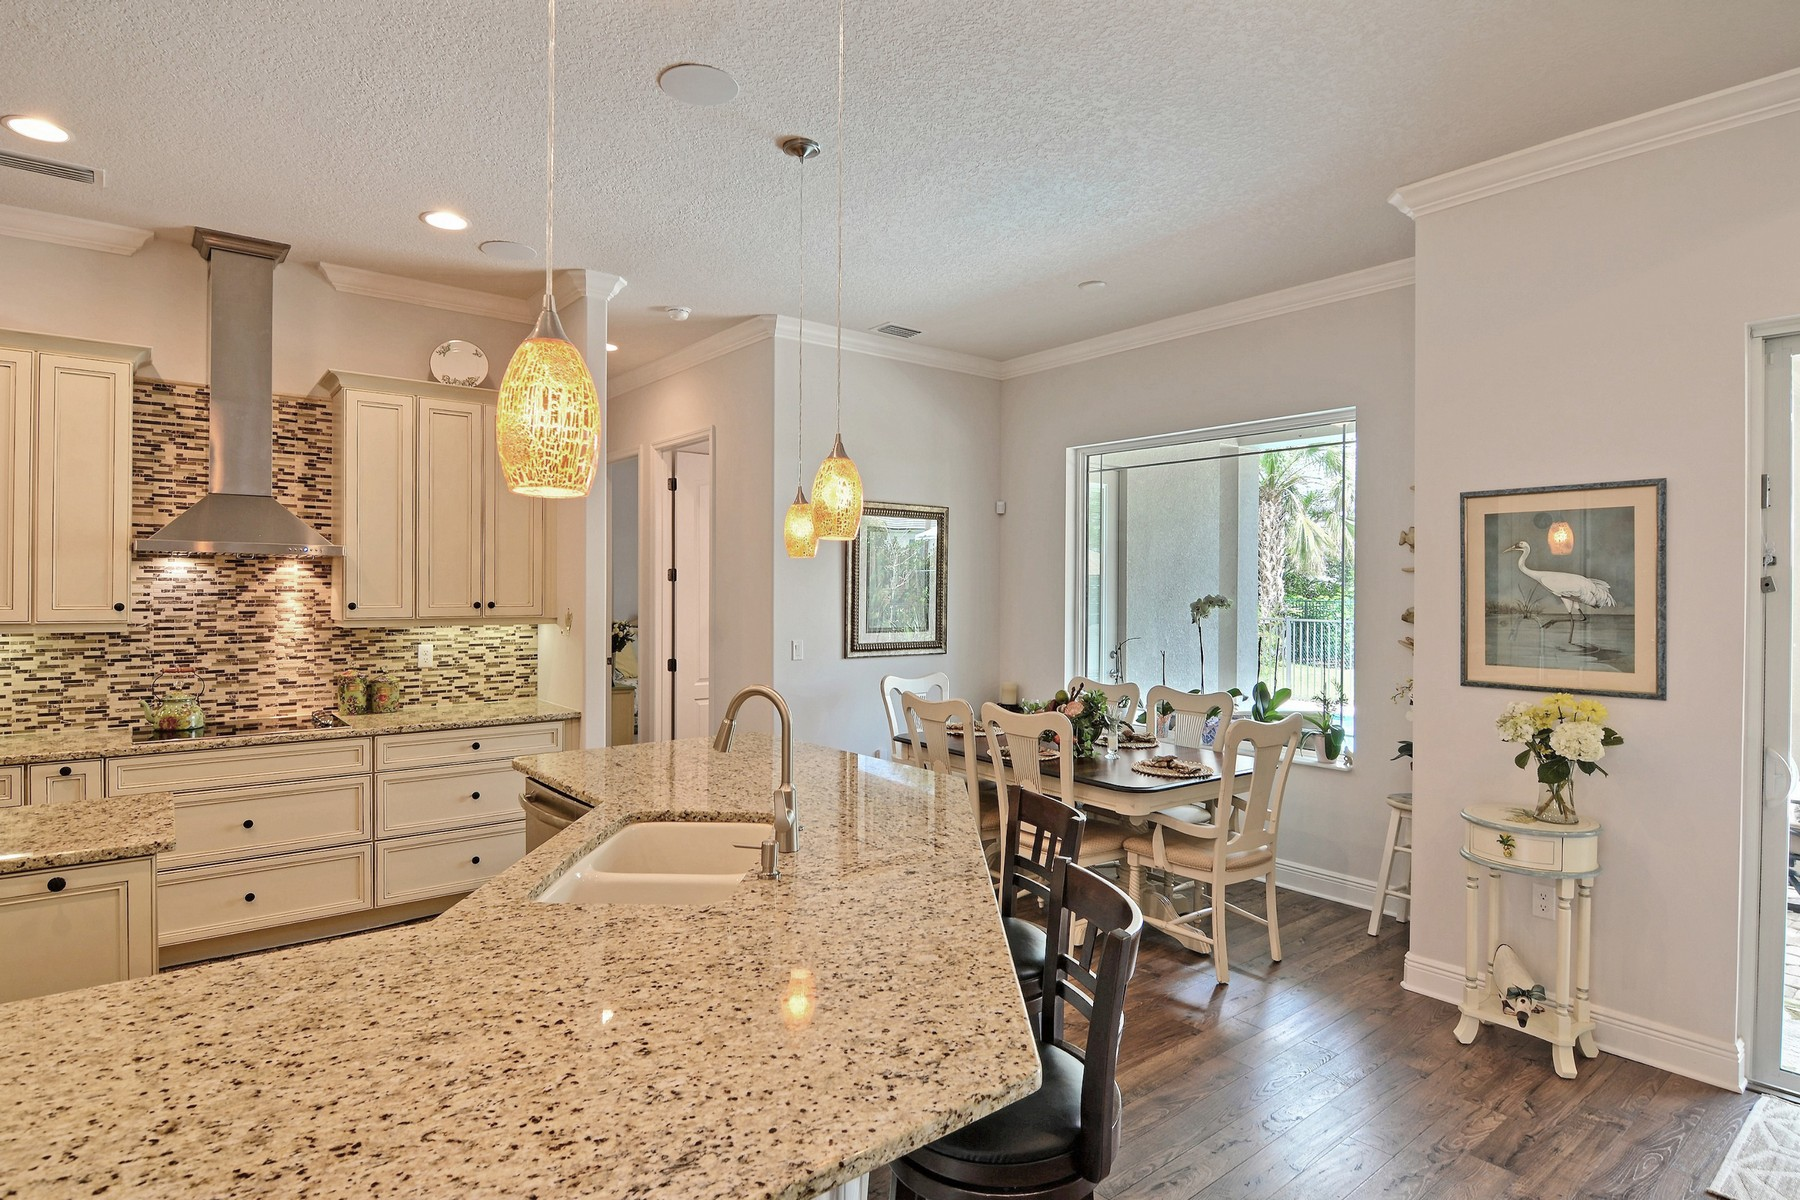 Additional photo for property listing at Stunning Village Shores Home 919 Holoma Drive Indian River Shores, Florida 32963 United States